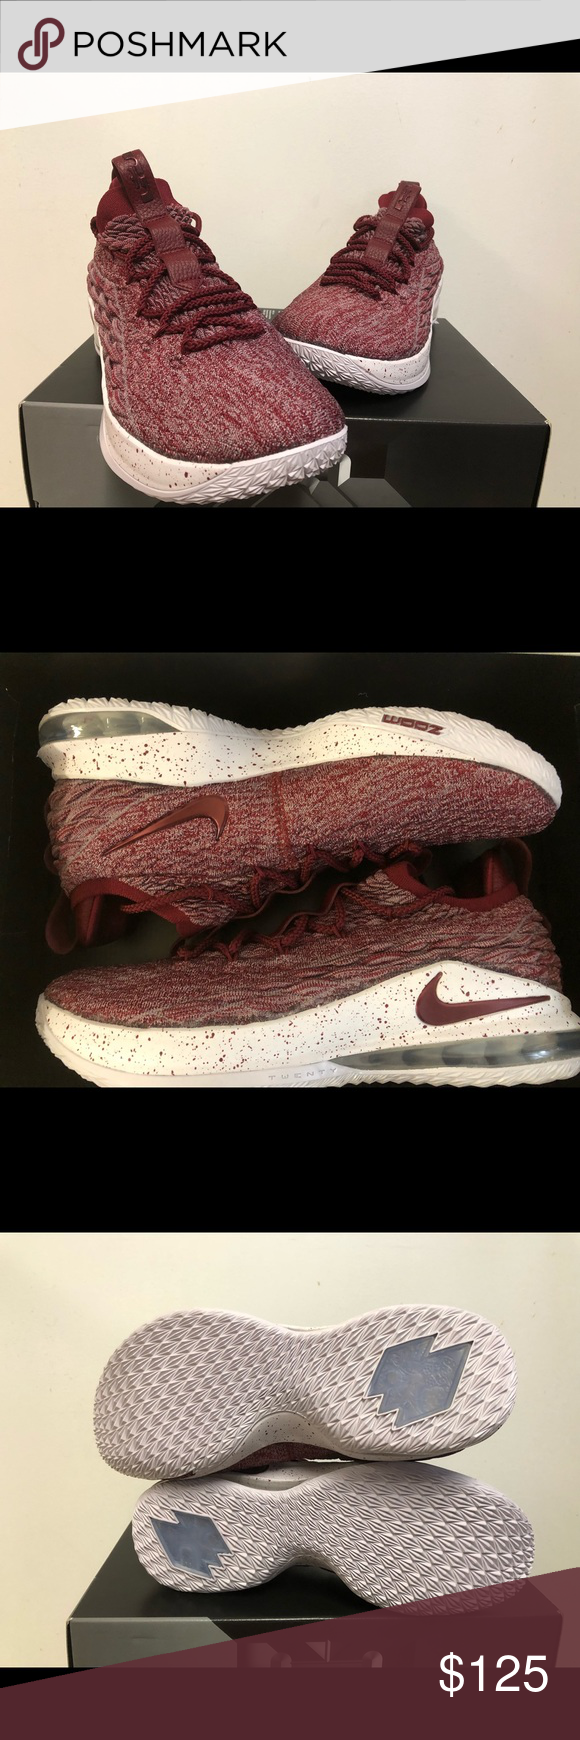 9252feb0c26 NIKE LEBRON 15 XV LOW TEAM RED AO1755-200 100% authentic and deadstock Come  with original box but box lid was removed for display Nike Shoes Athletic  Shoes